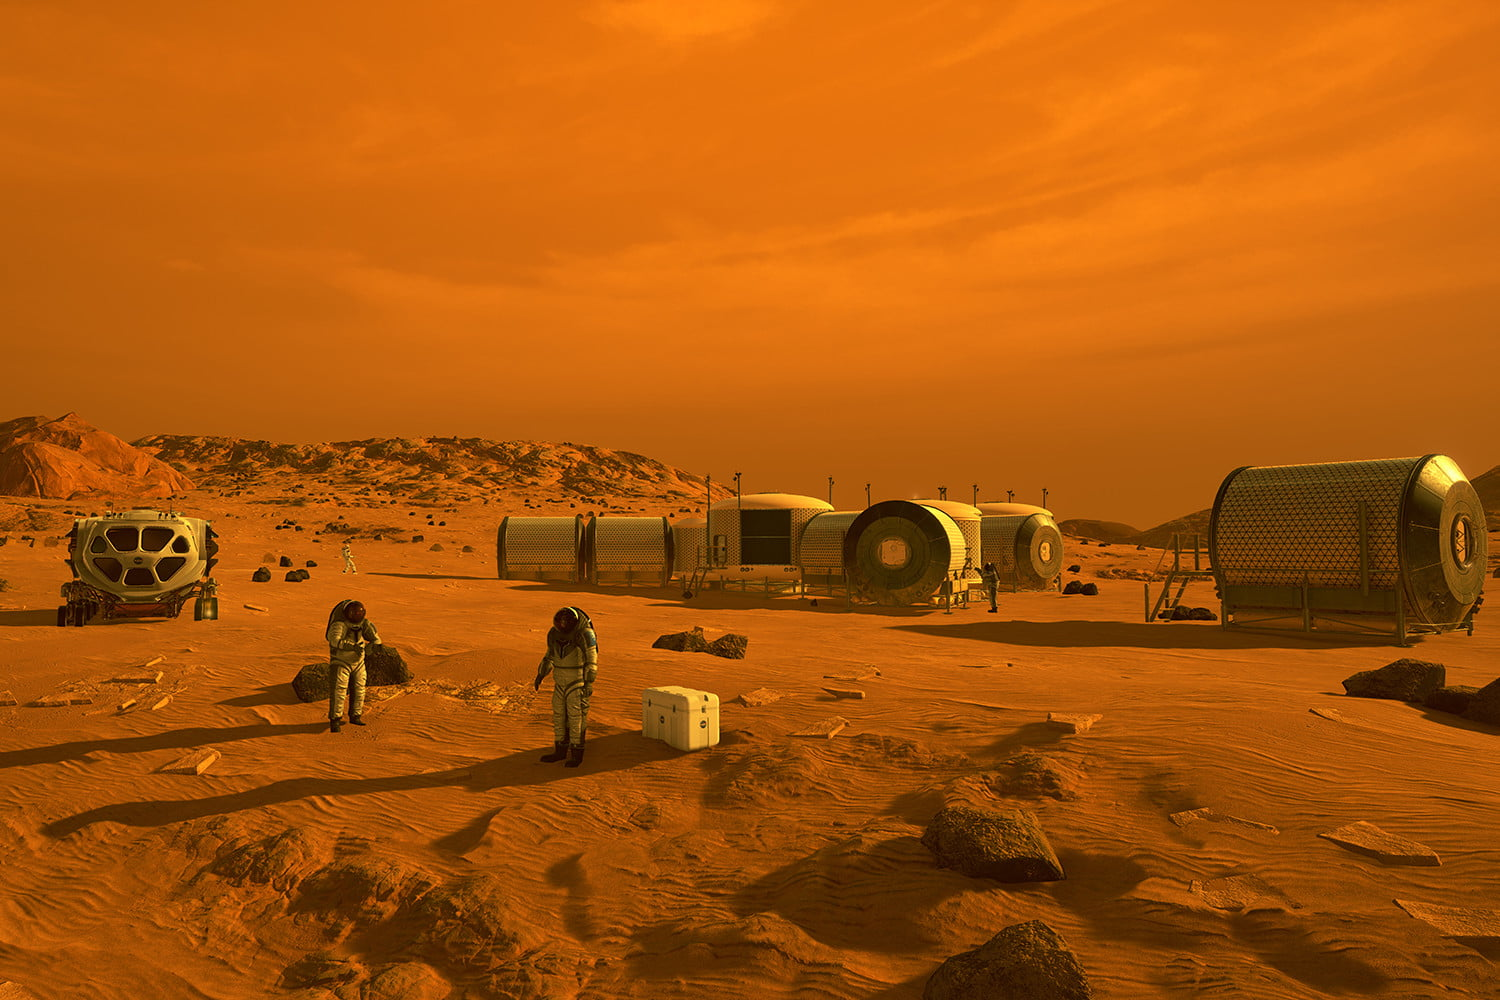 Harvard University has a bold new plan to make Mars livable for humans